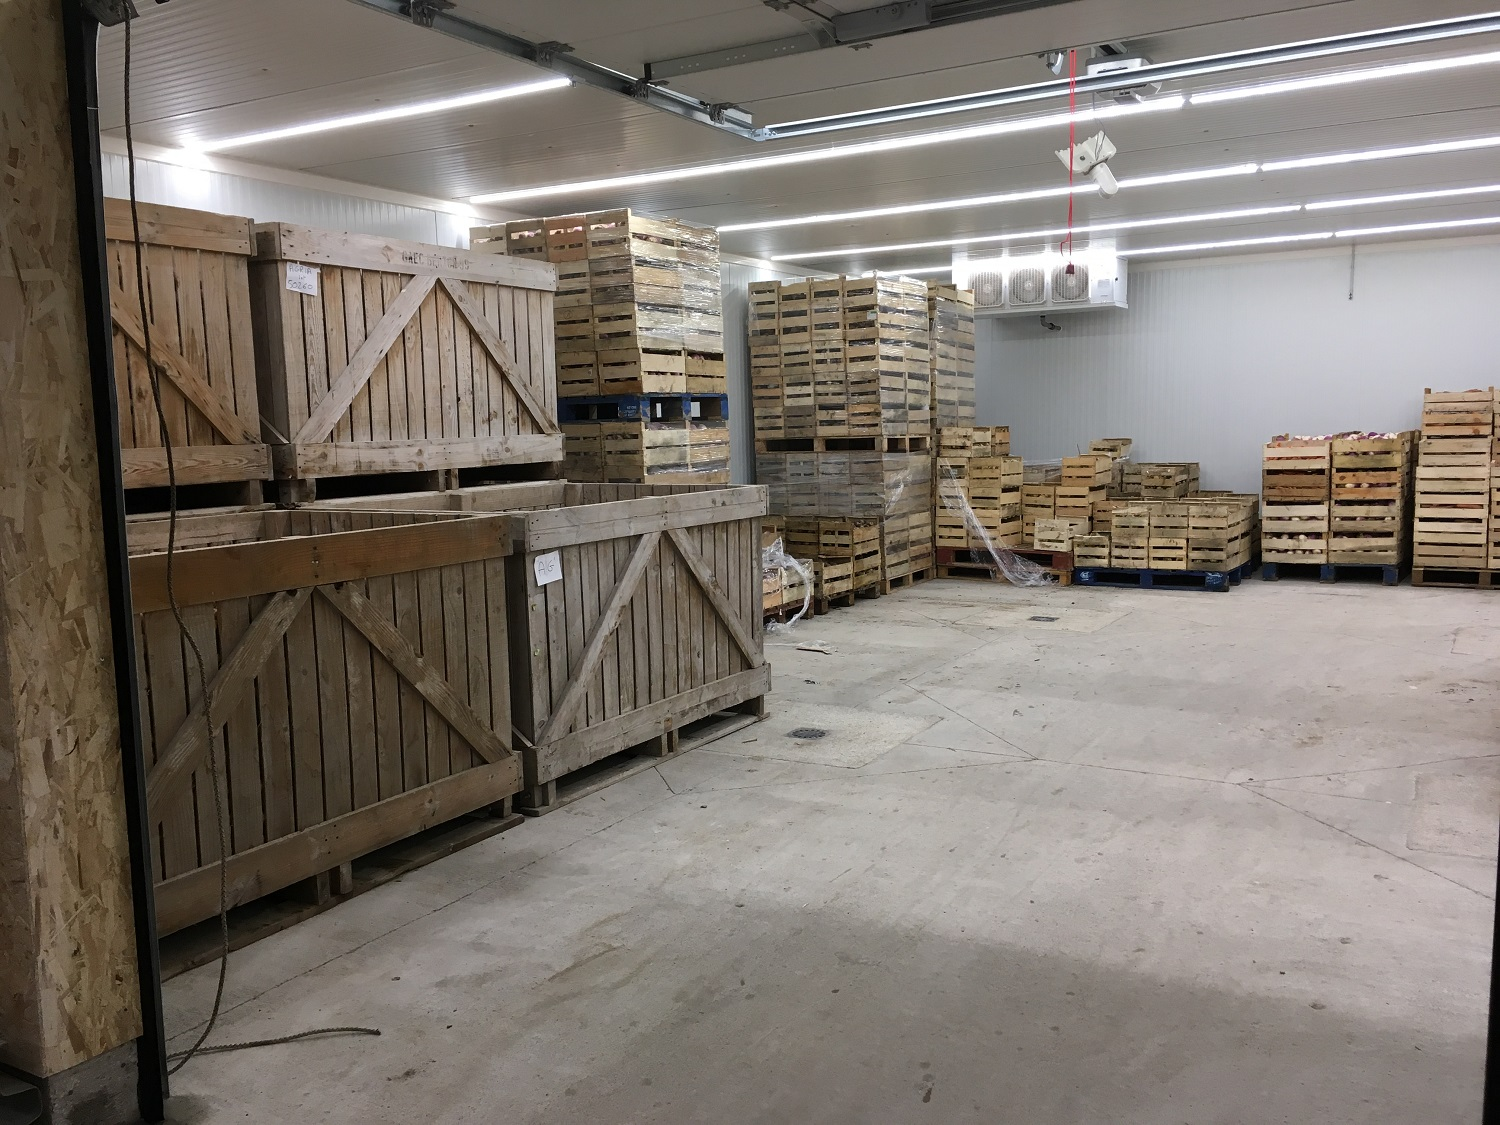 Stockage en attente de conditionnement